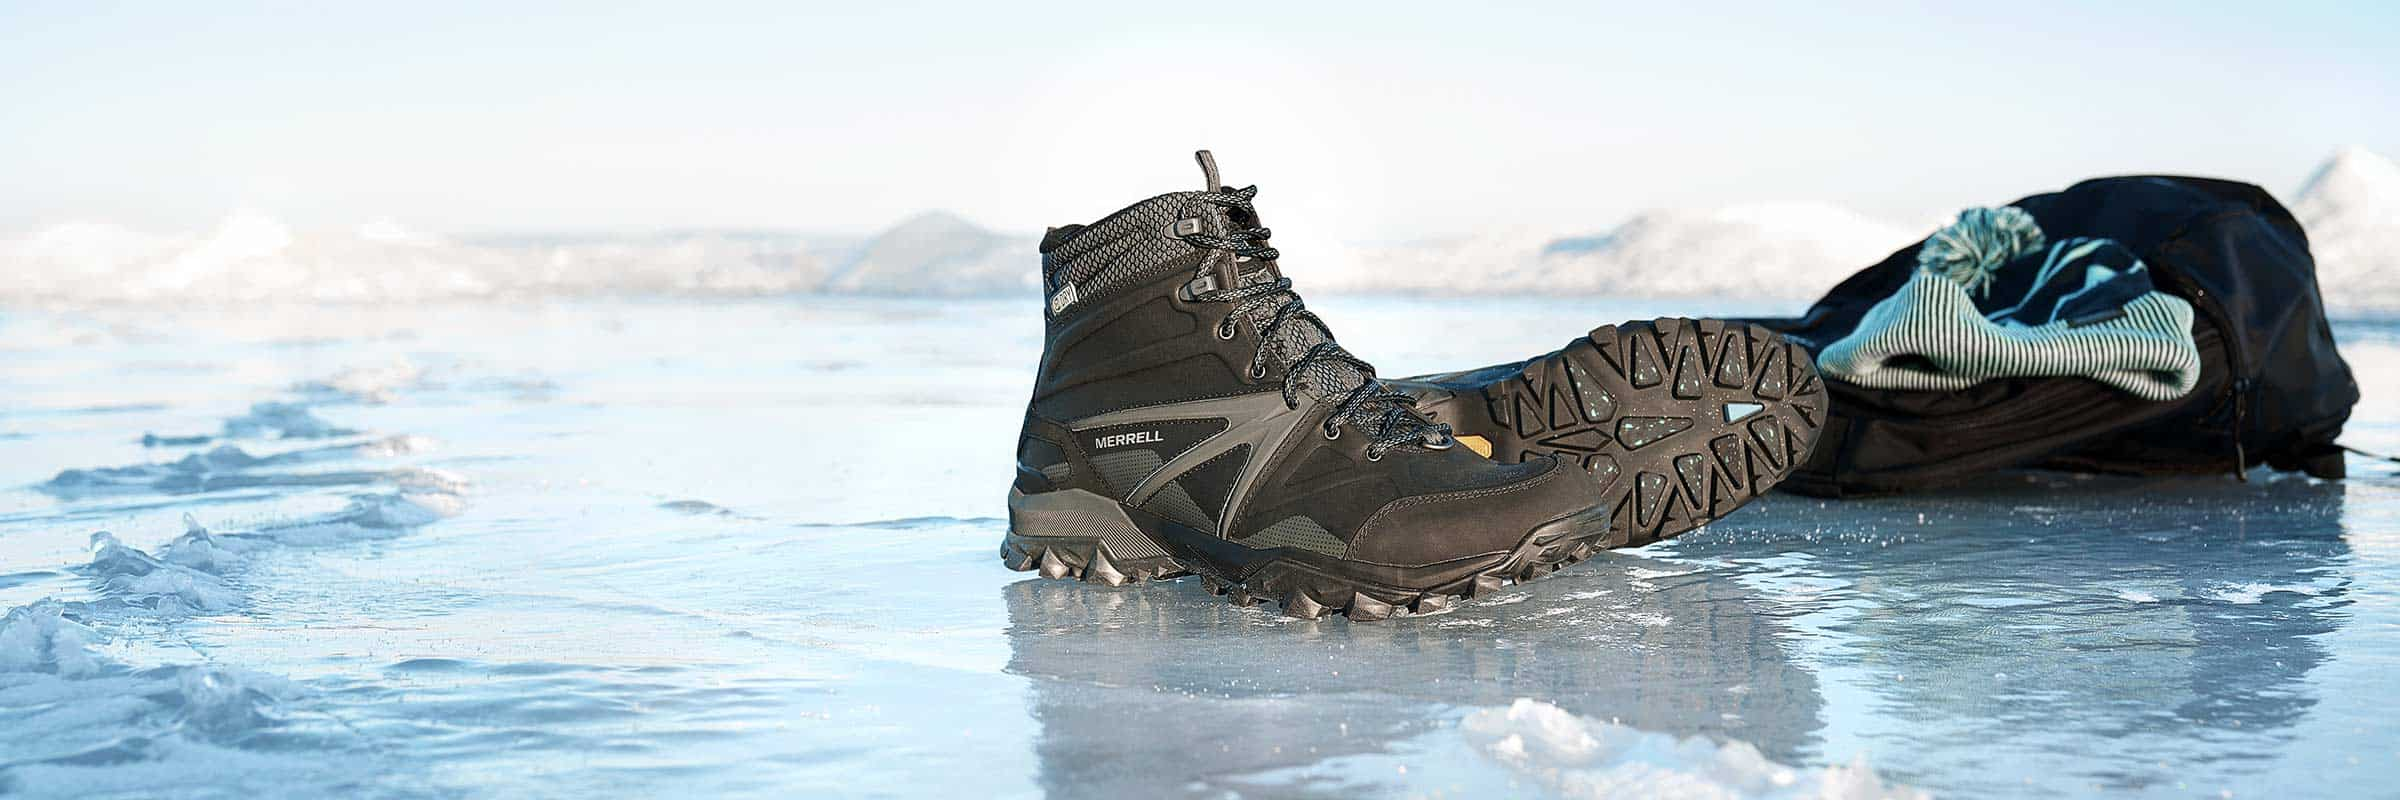 8a7e68b179e Boots, Merrell, Saucony, Sperry Top-Sider, Winter, Wolverine. With